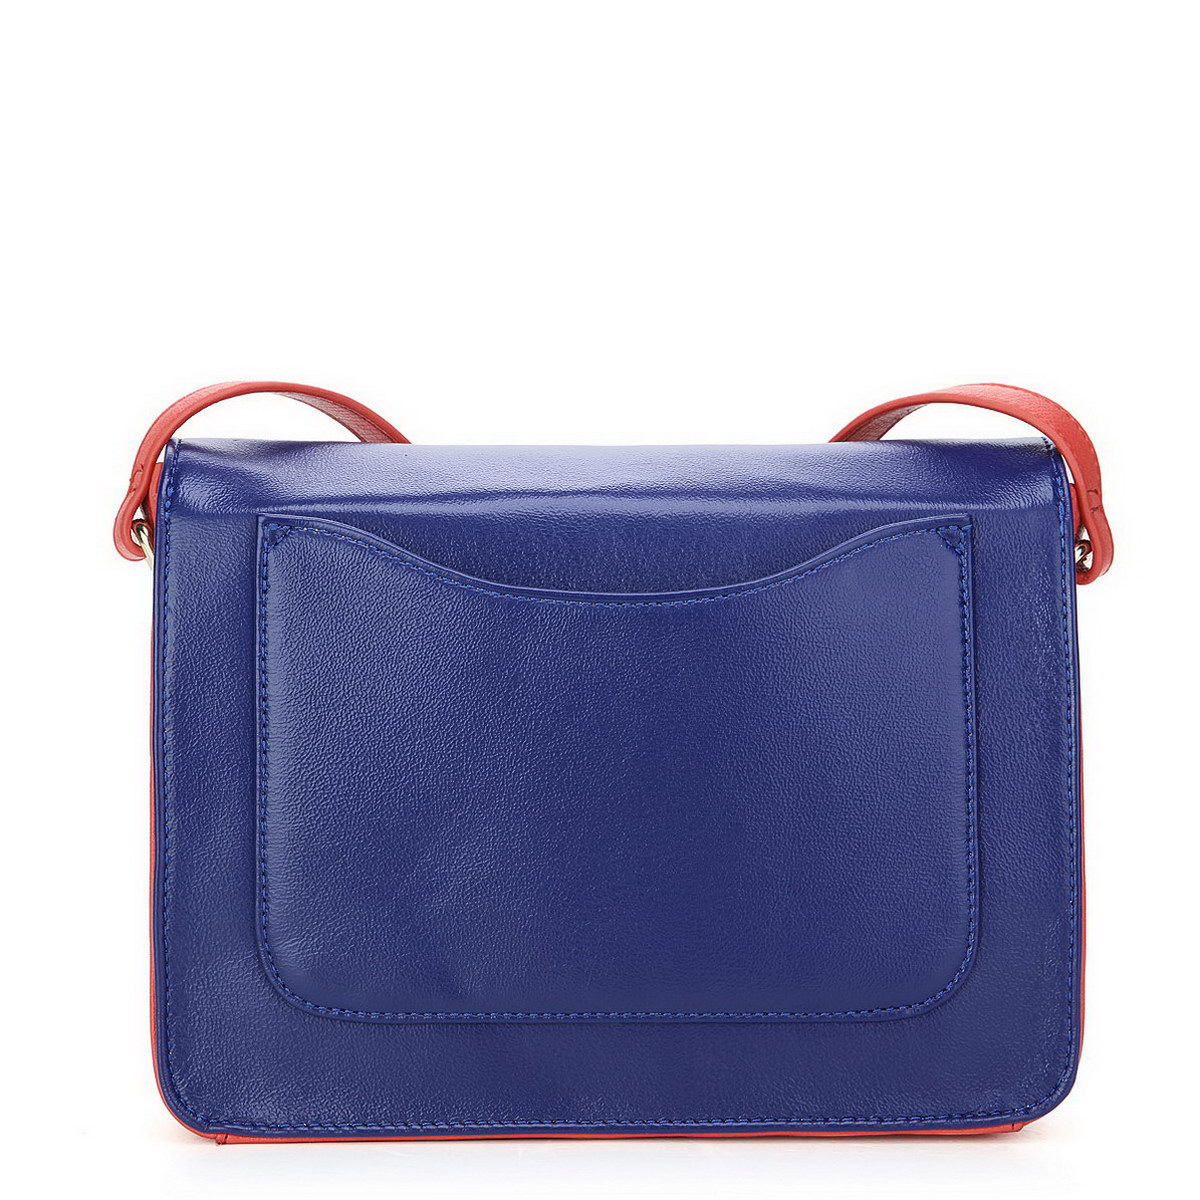 ... : Home  Women's Bags  Messenger Bags  Women messenger bag Blue